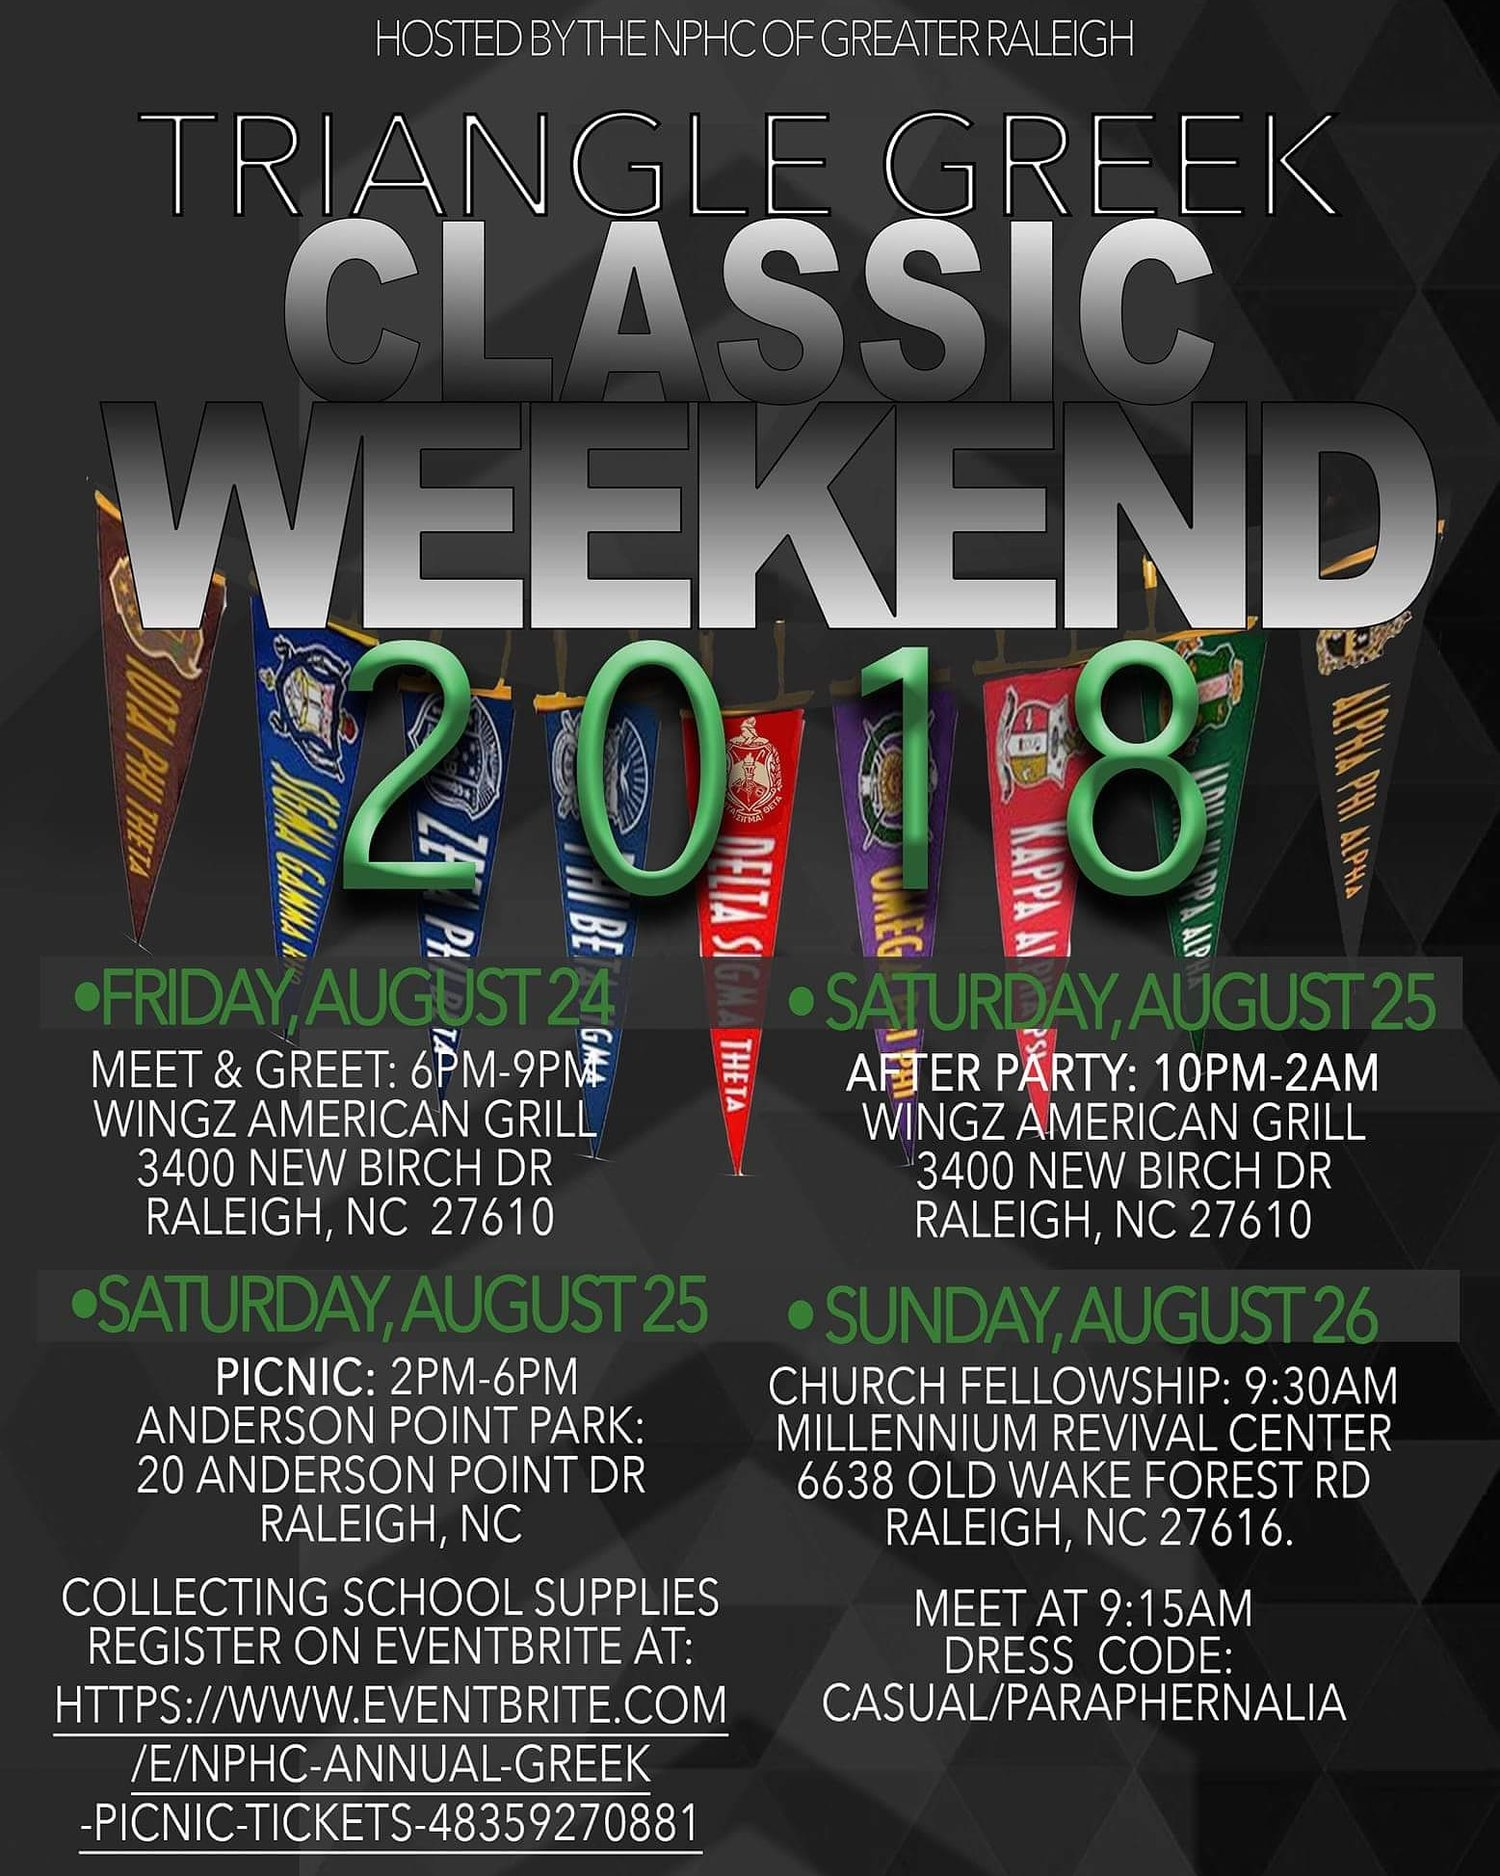 Triangle Greek Classic Weekend — NPHC Greater Raleigh Area